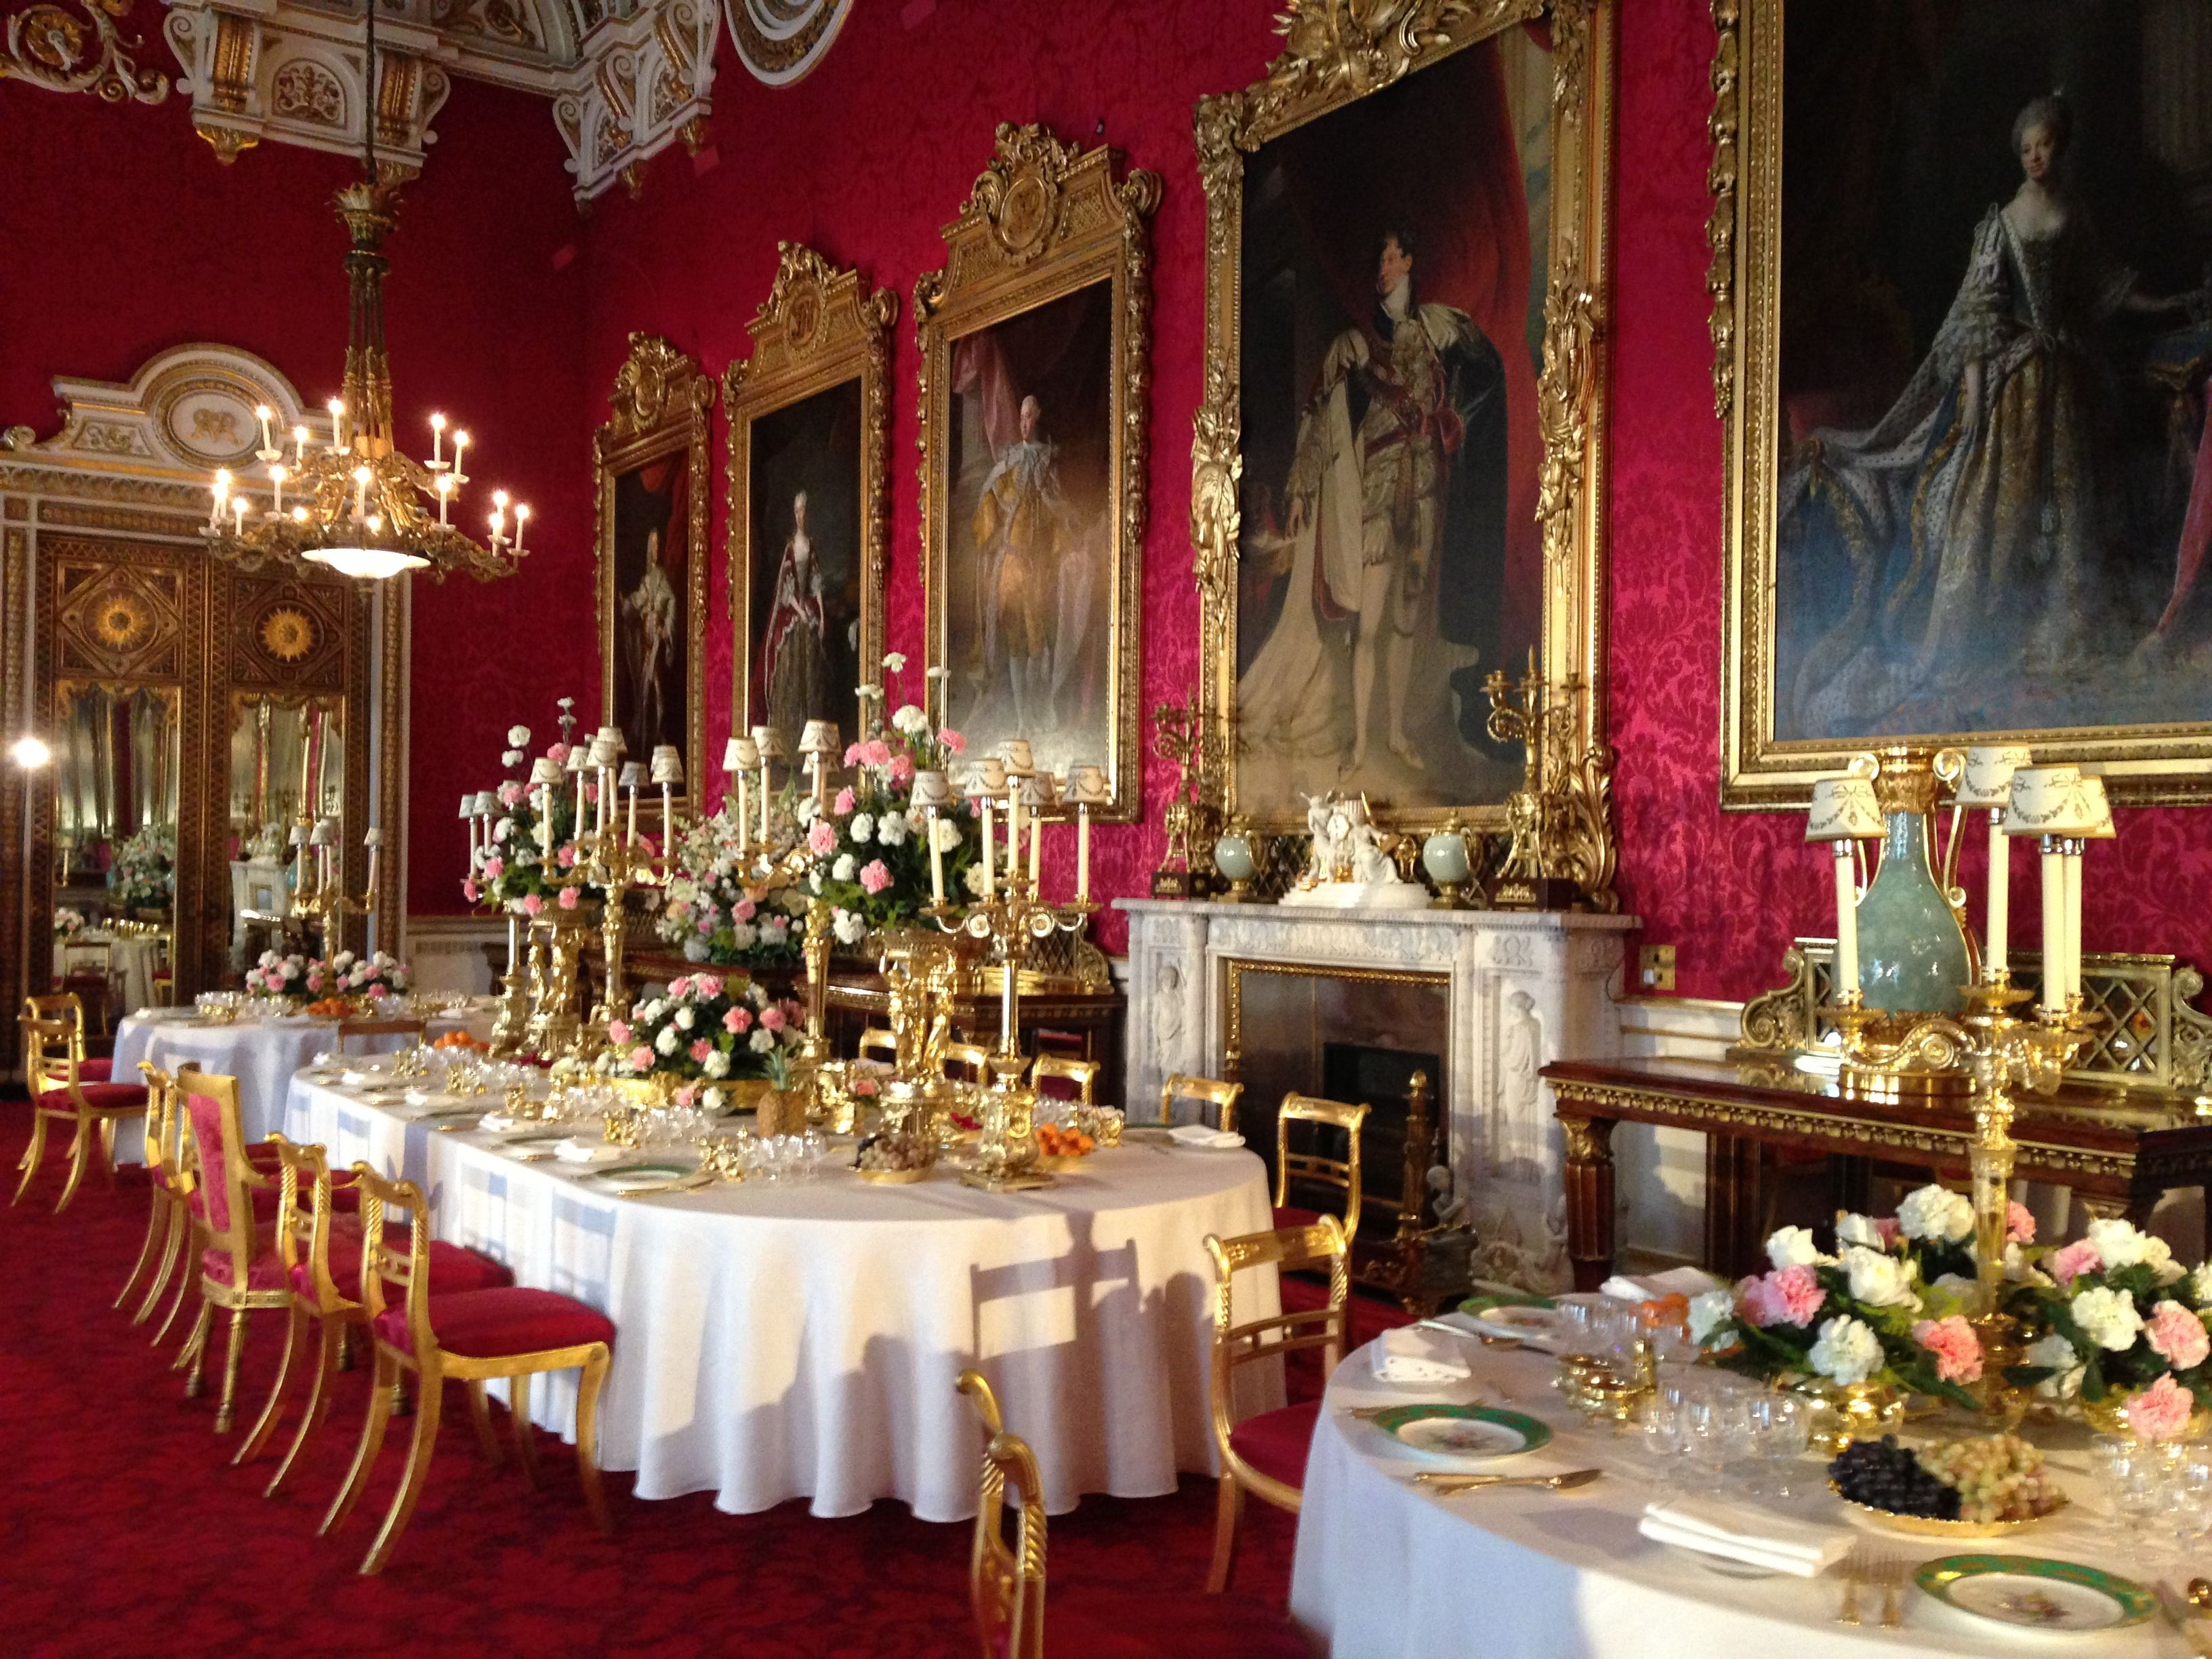 The state dining room buckingham palace crimson silk damask in an